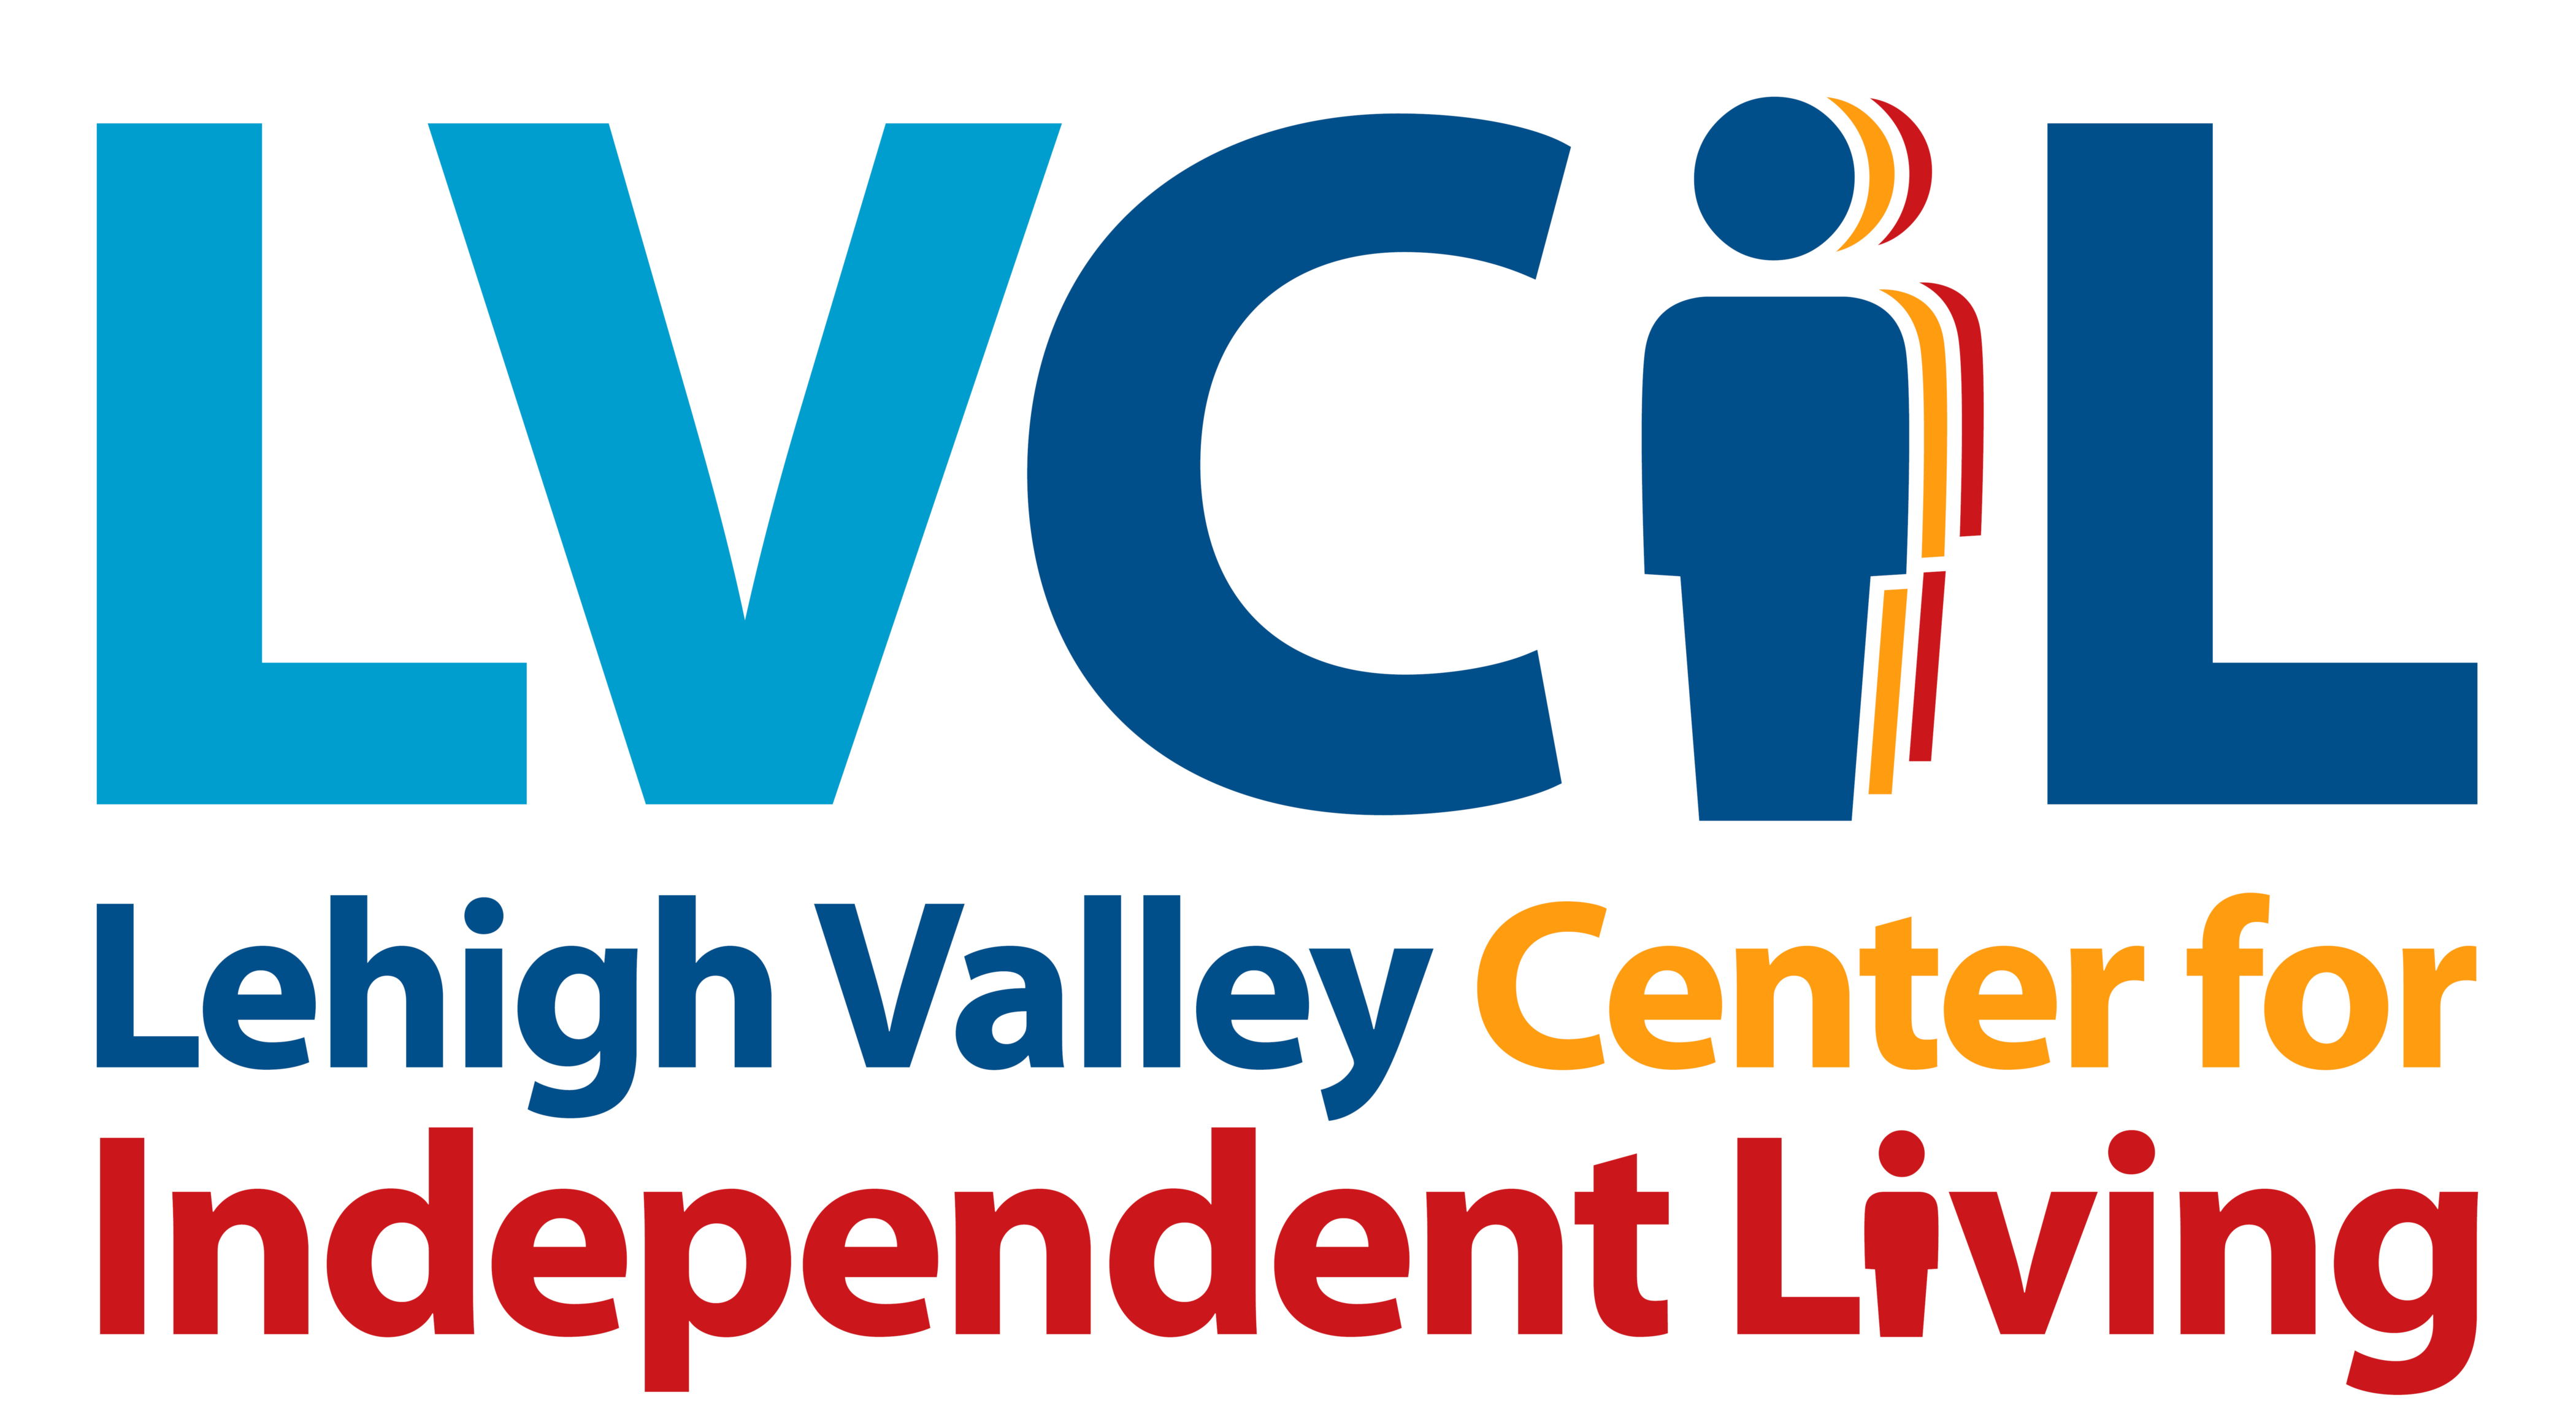 Lehigh Valley Center for Independent Living (LVCIL) logo